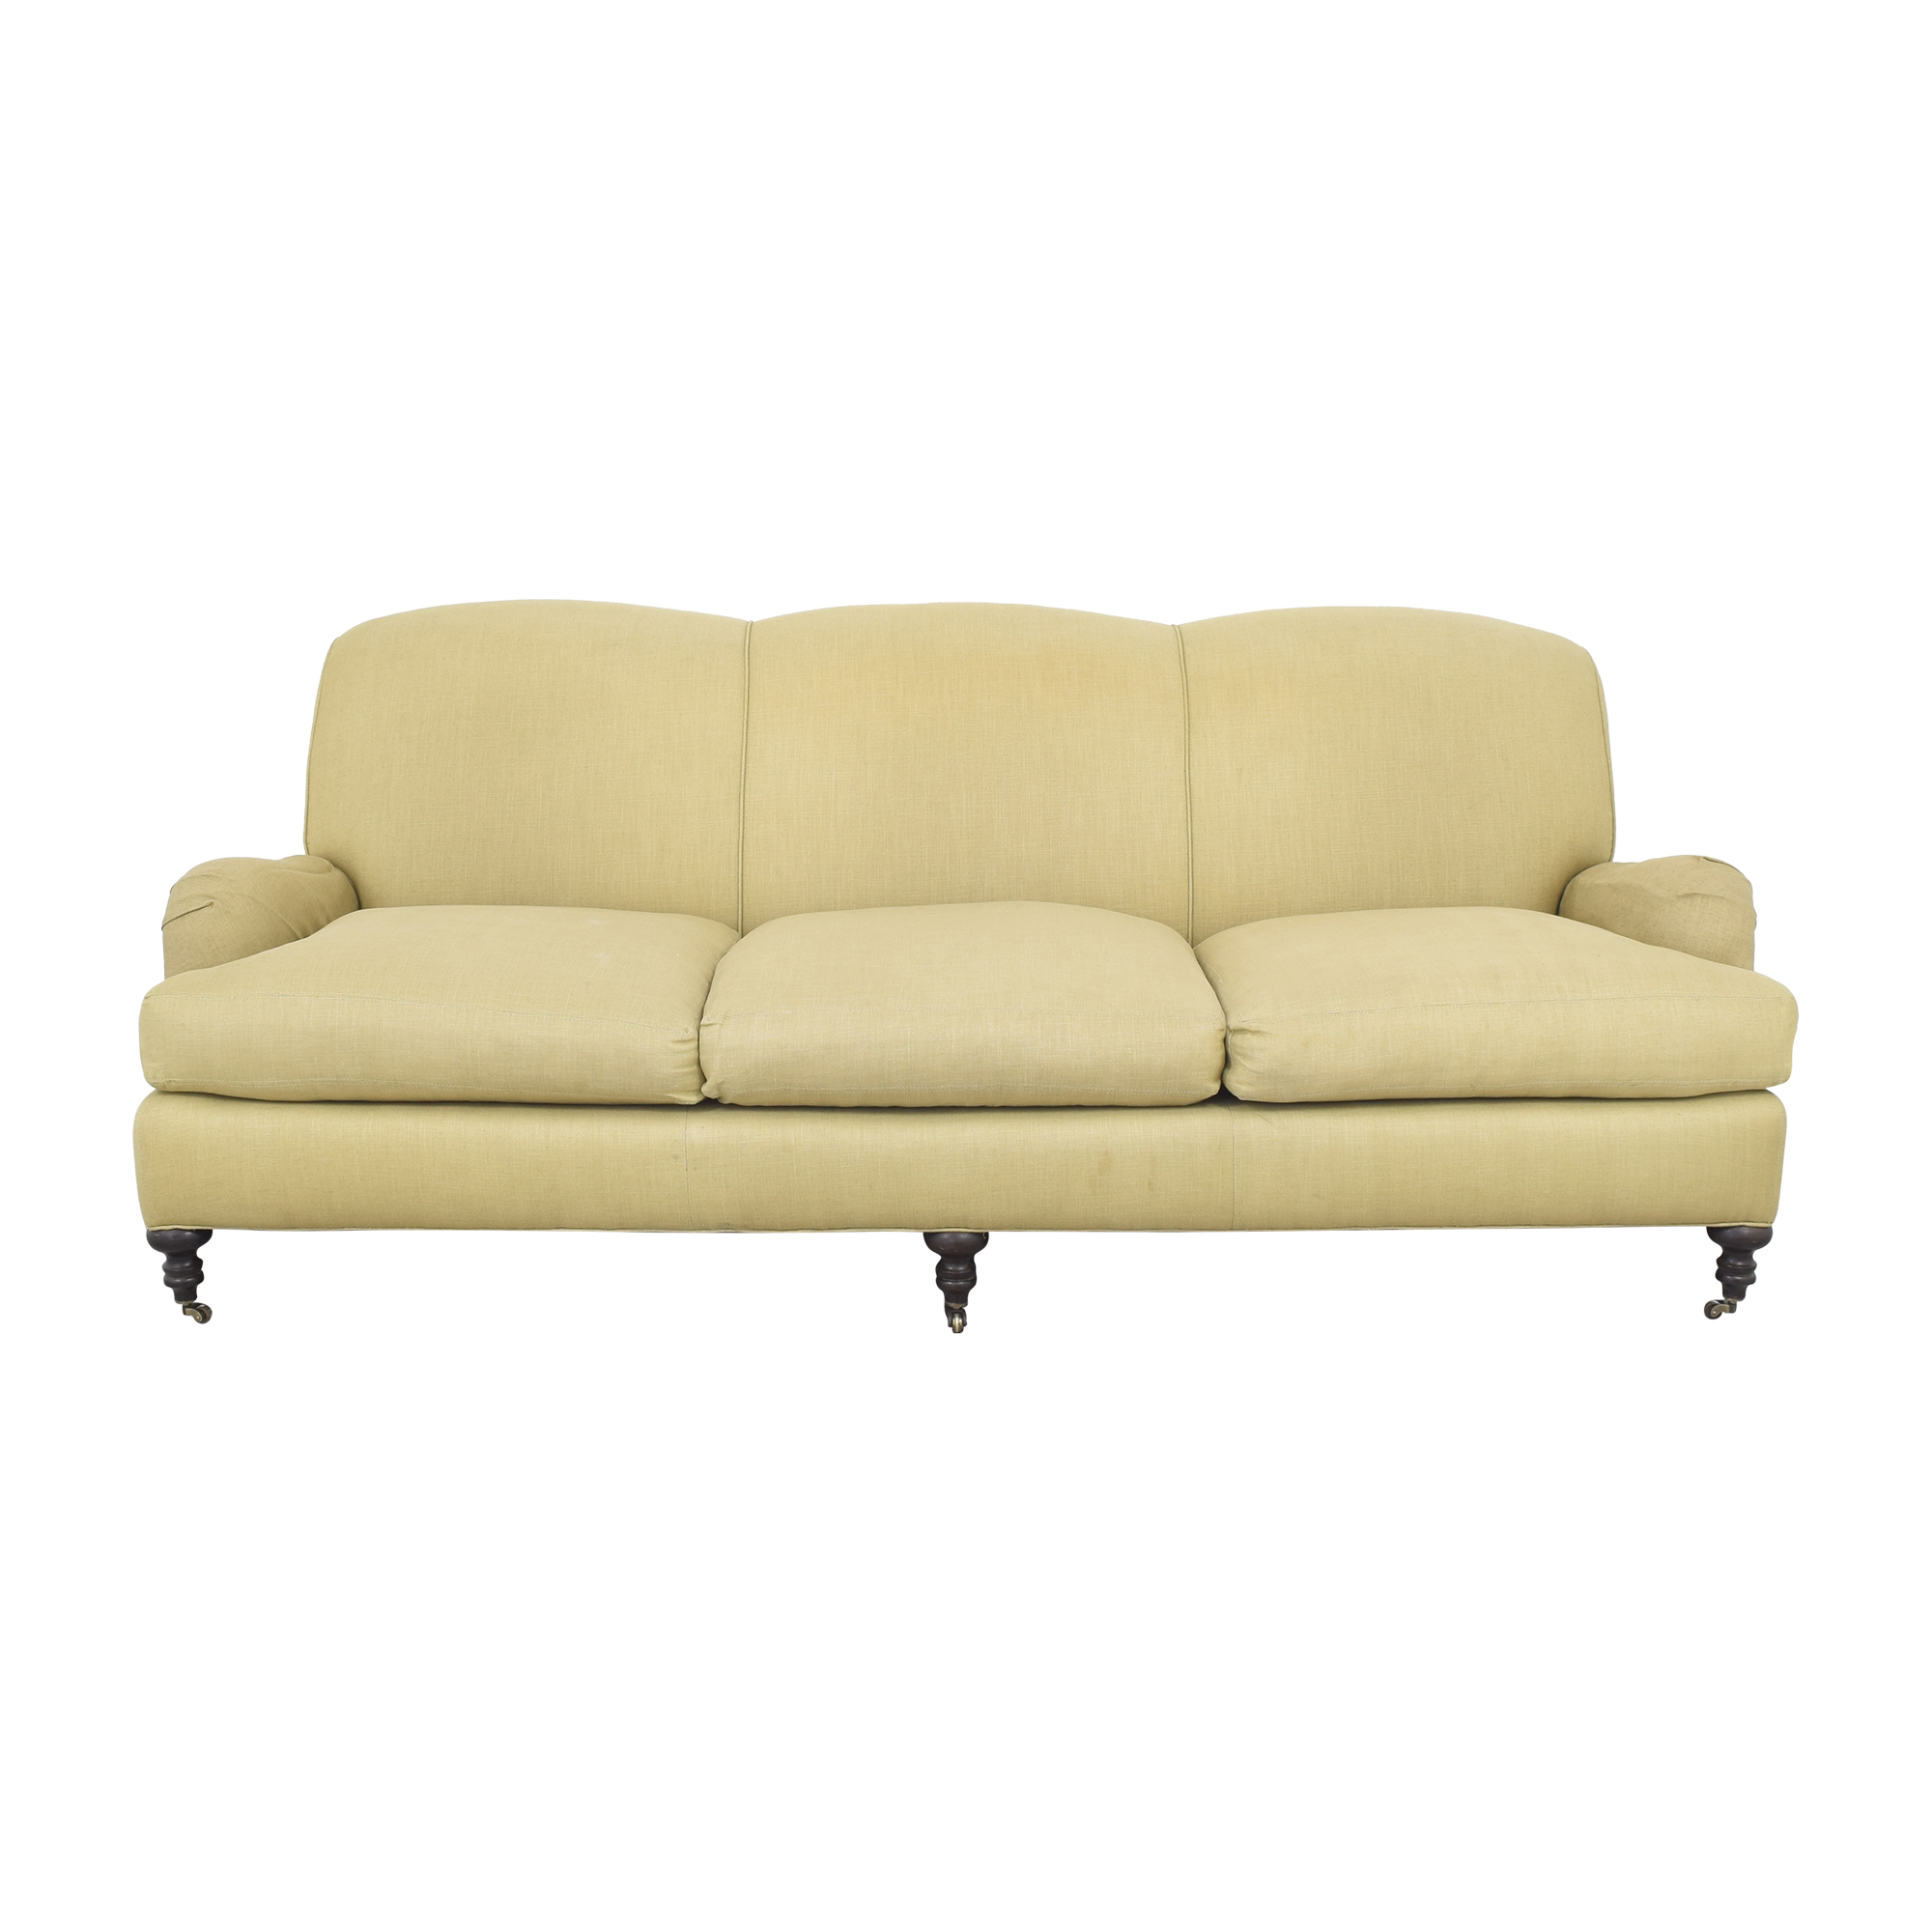 Lillian August Rolled Arm Sofa / Classic Sofas